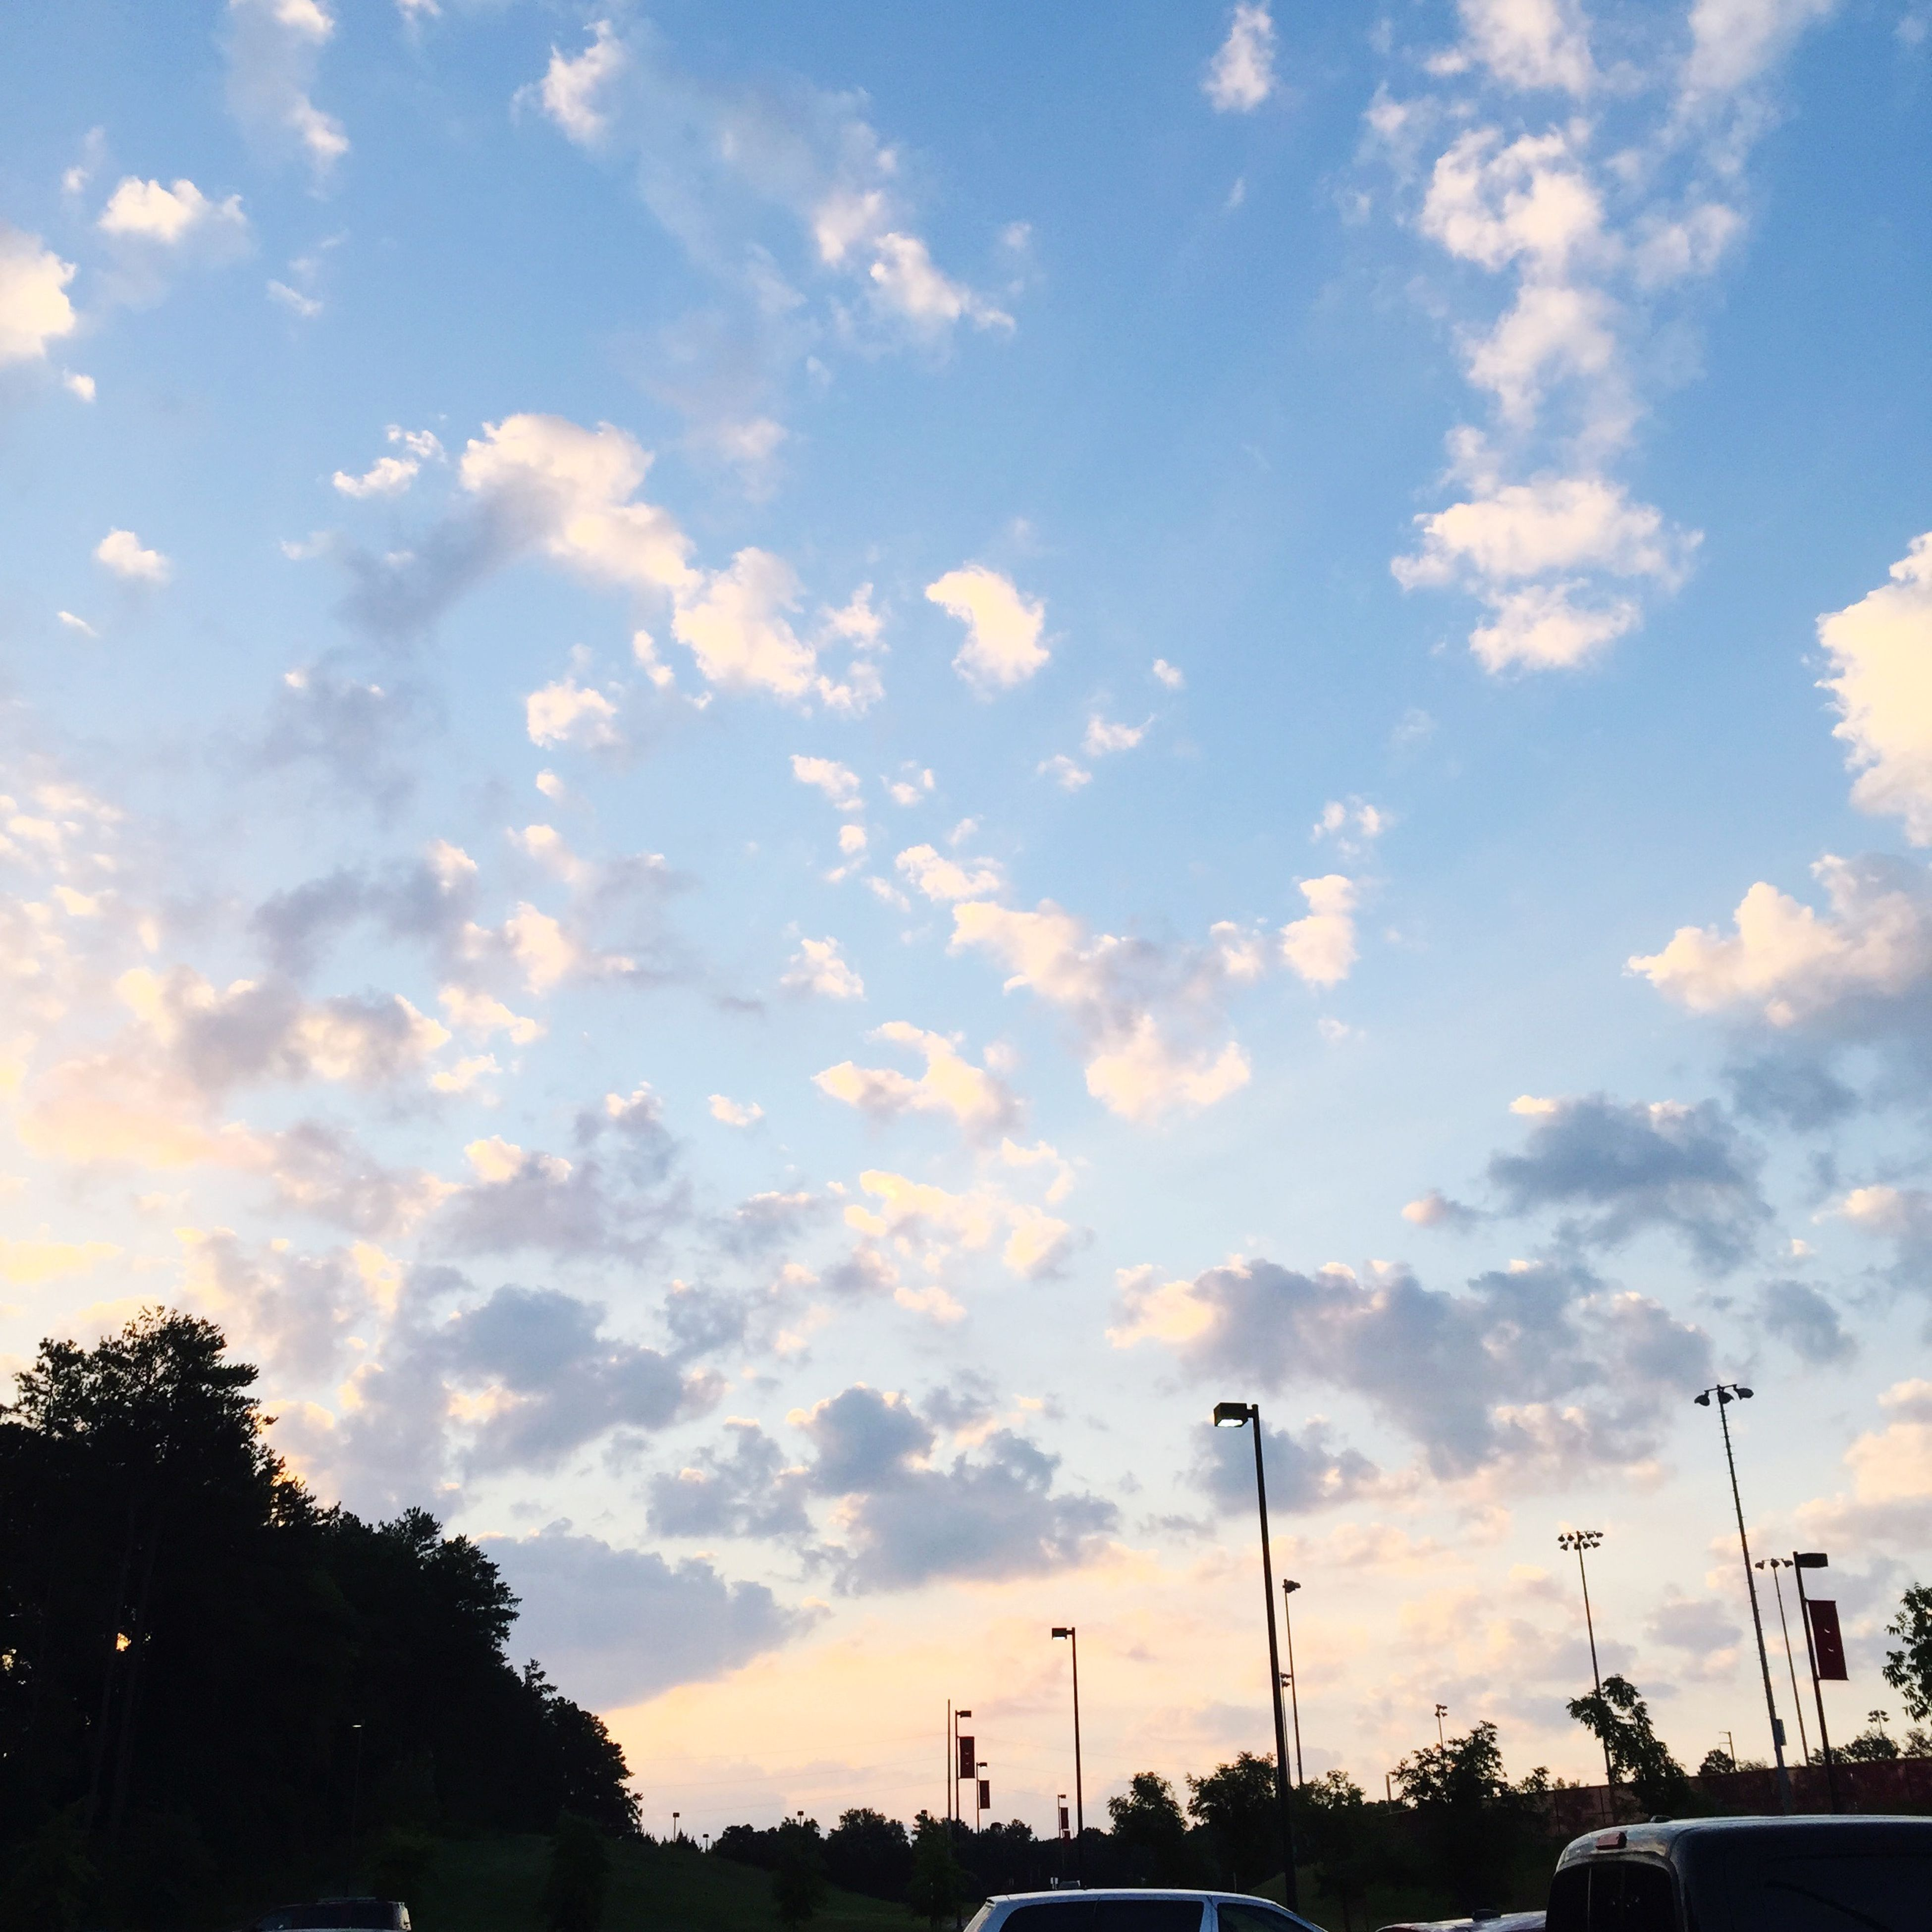 sky, silhouette, sunset, cloud - sky, tree, low angle view, beauty in nature, cloud, nature, scenics, tranquility, transportation, cloudy, car, land vehicle, tranquil scene, street light, outdoors, no people, mode of transport